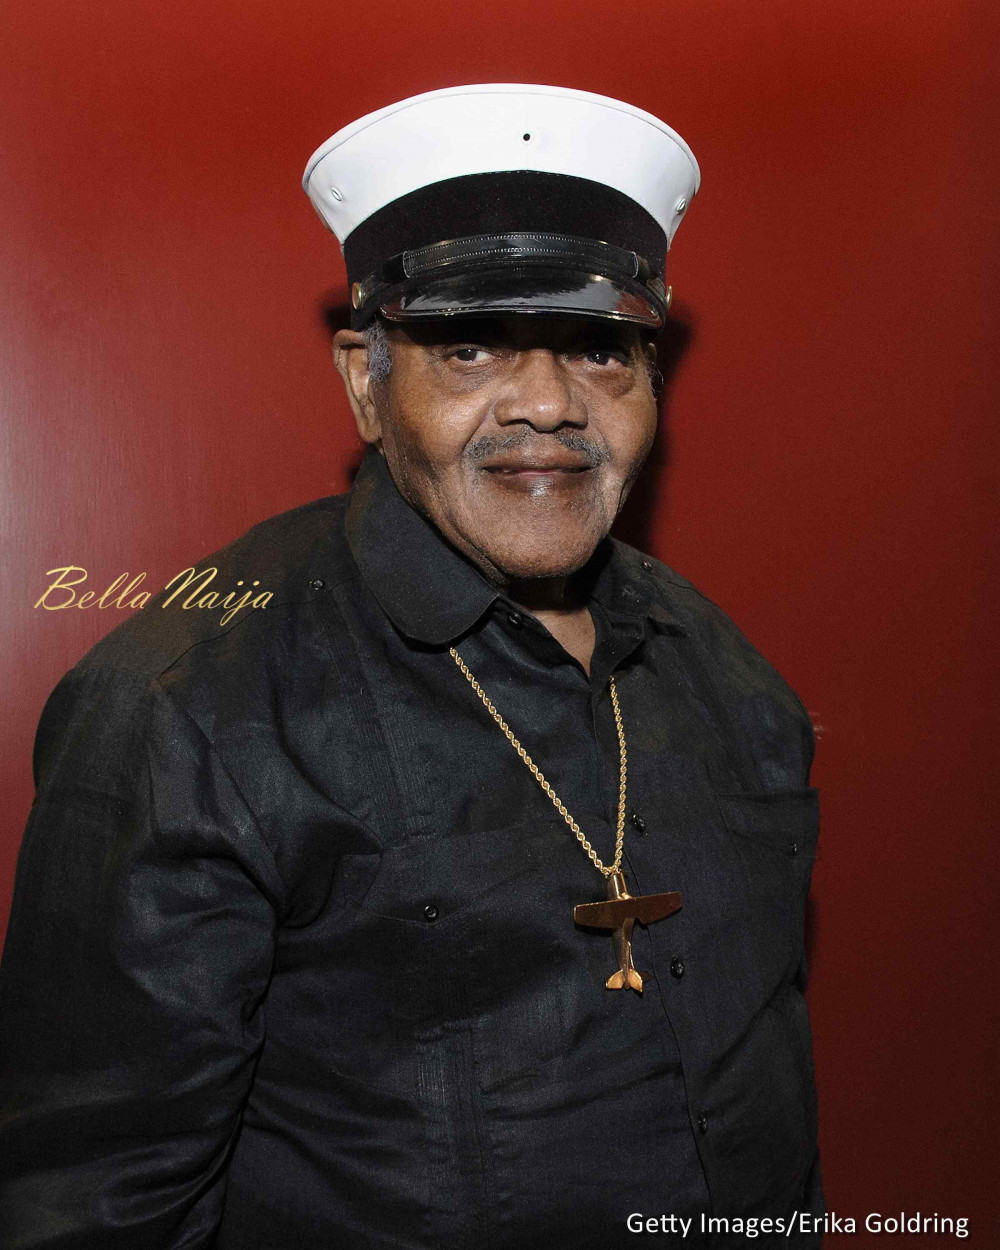 Rock n Roll legend Fats Domino passes aged 89